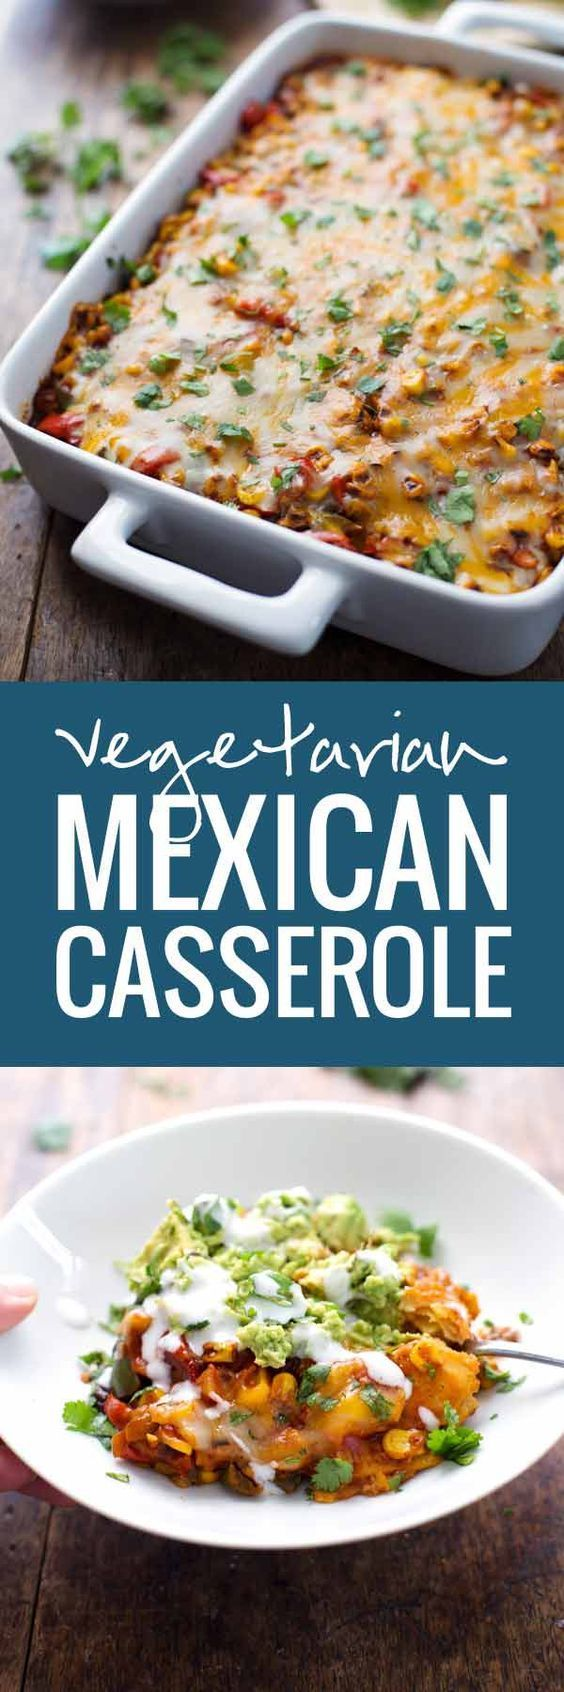 1789 best Best Recipes - Savory images on Pinterest | Cooking ...